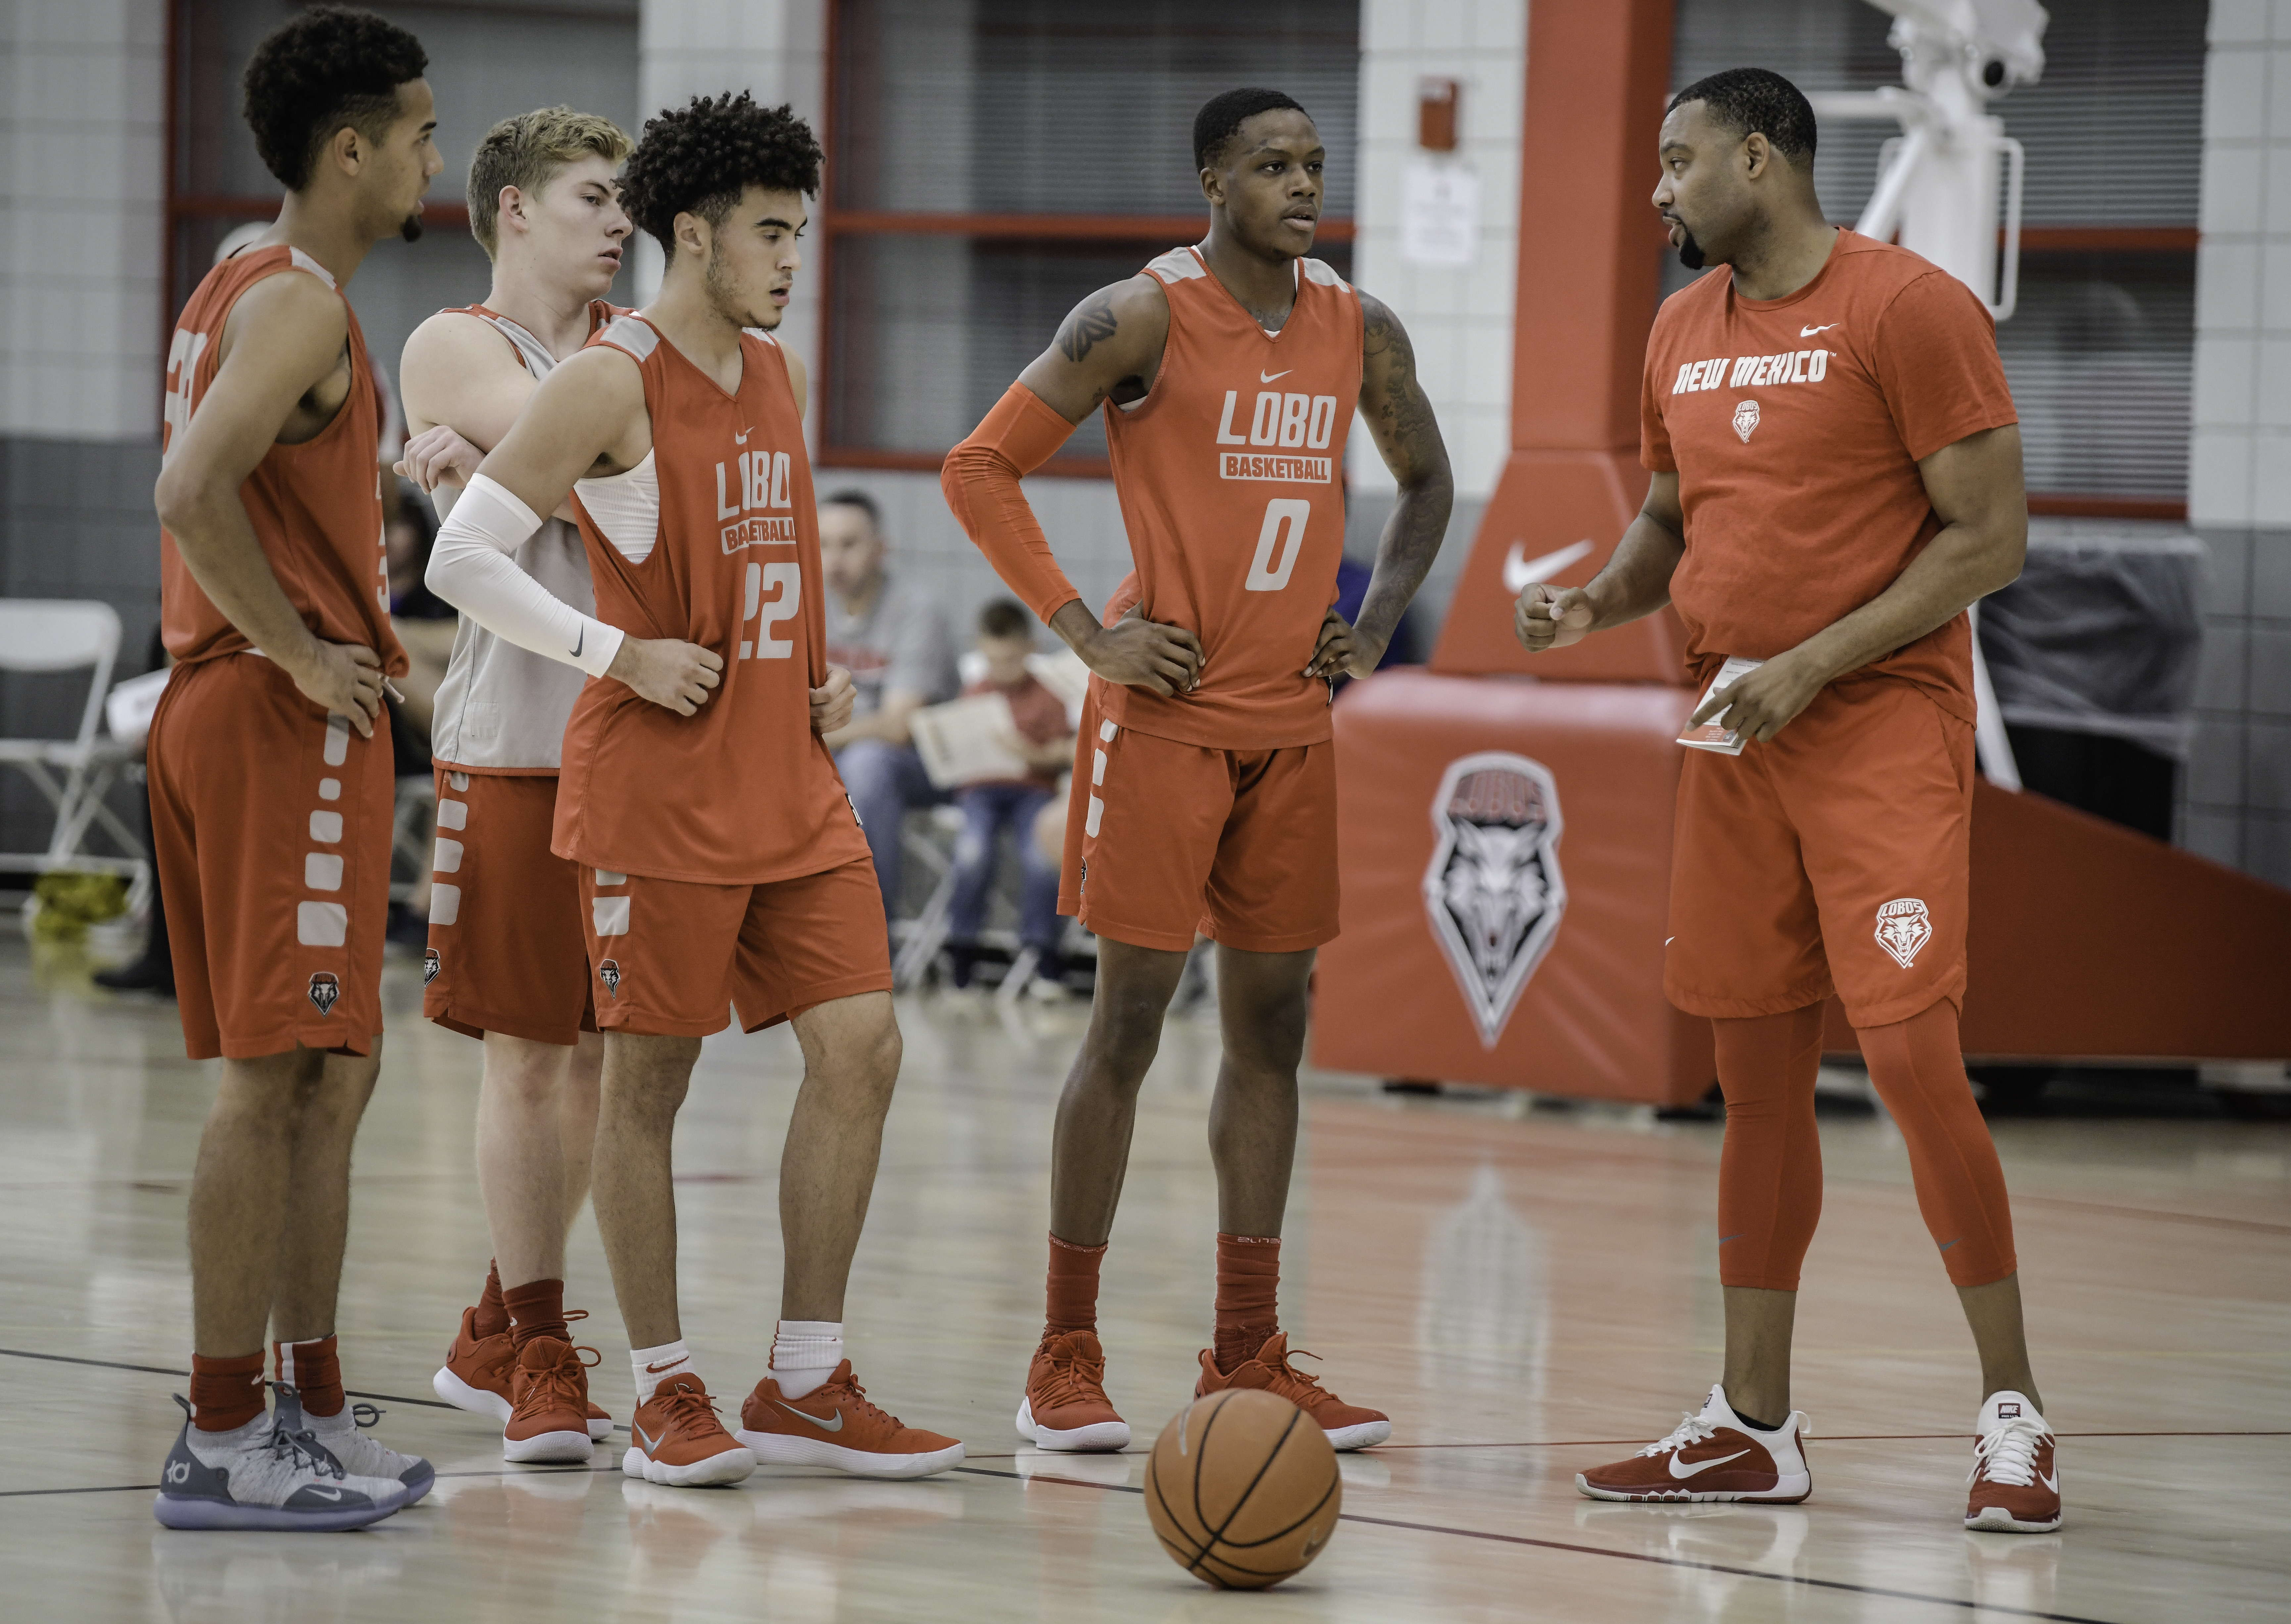 September 28, 2018 - Albuquerque, New Mexico, U.S. - Roberto E. RosalesJournal.The UNM Lobos basketball team held their first practice Friday afternoon with several newcomers joining the team.  Pictured from left to right are Anthony Mathis(Cq), Clay Patterson(Cq) Drue Drinnon(Cq)Keith McGee(Cq) as they listen to assistant coach Brandon Mason(Cq) on the far right. .Albuquerque, New Mexico  (Credit Image: © Roberto E. Rosales/Albuquerque Journal via ZUMA Wire)